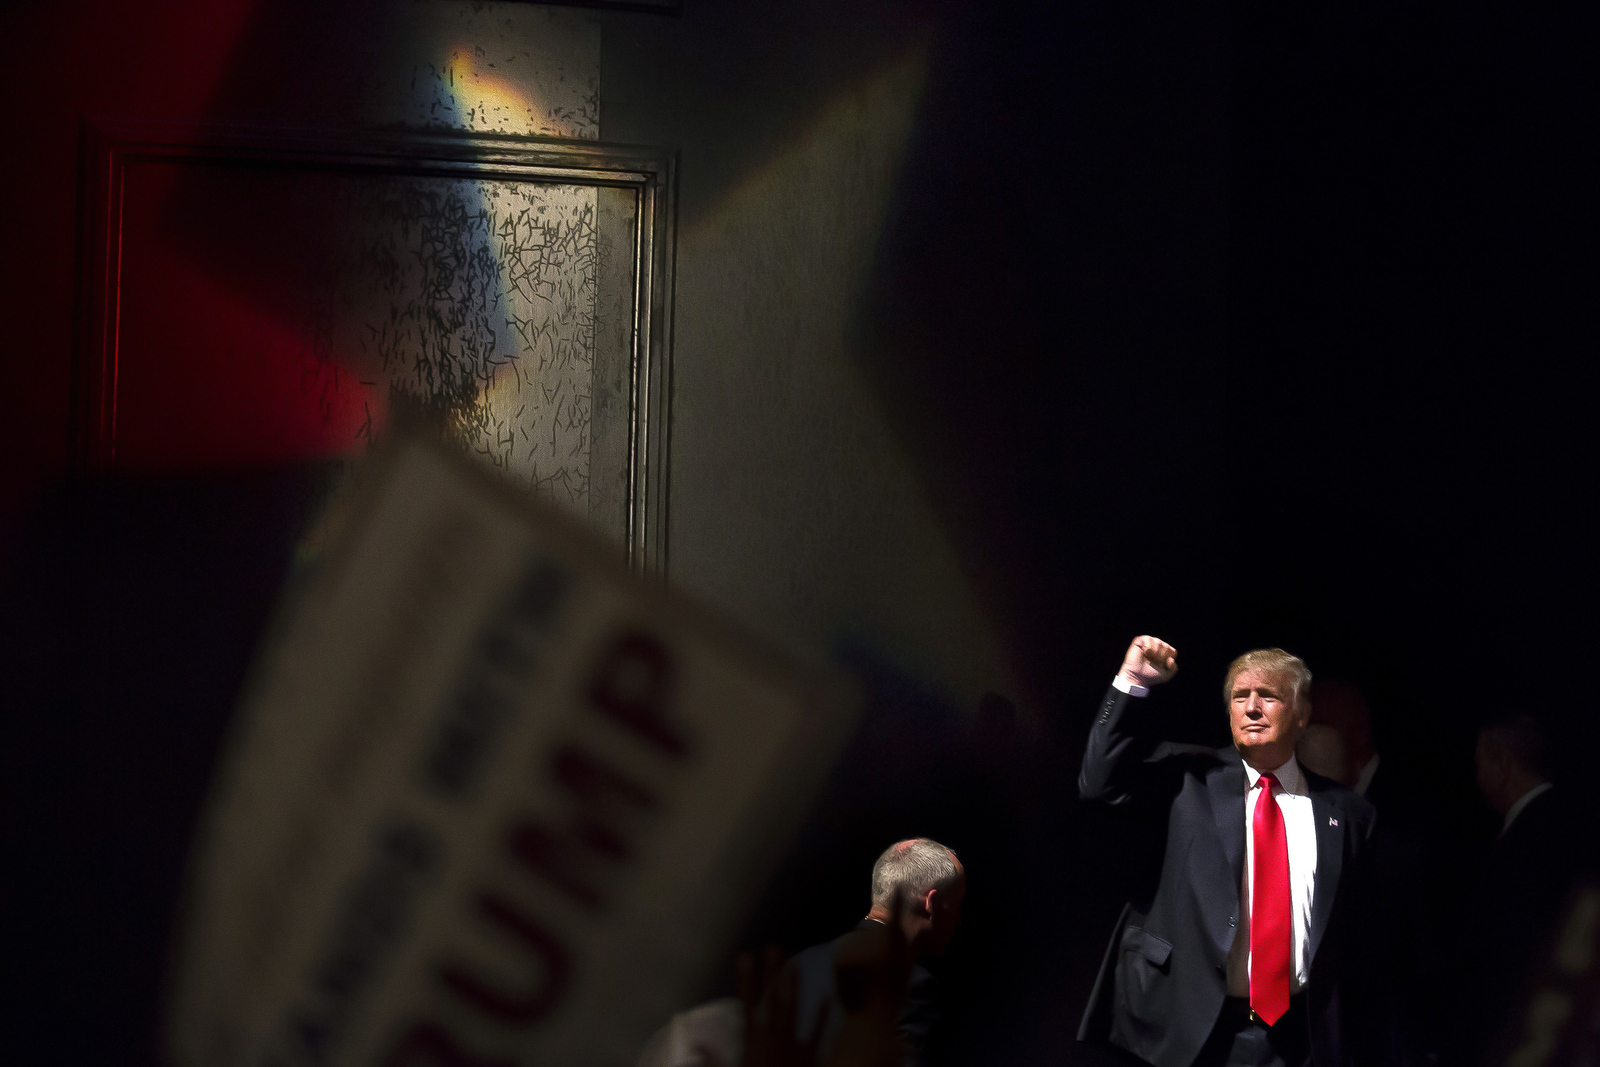 Presumptive Republican presidential nominee Donald Trump raises his fist as he leaves the stage after a rally in Raleigh.